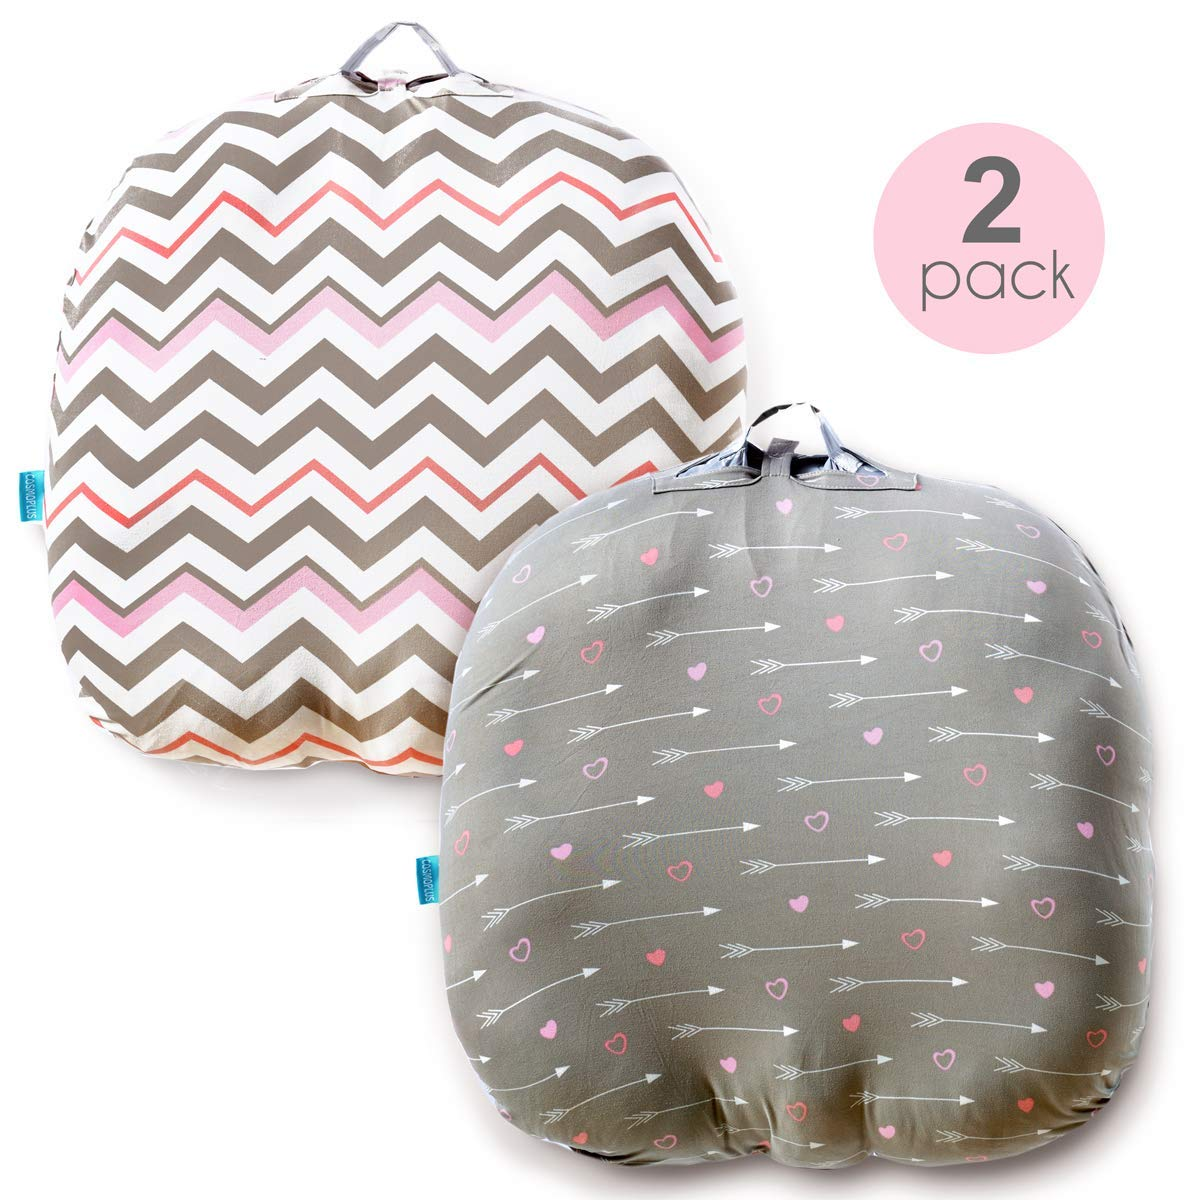 Stretchy Newborn Lounger Cover -2 Pack Removable Slipcover,Super Soft Snug Fitted,Arrow & Chevron by COSMOPLUS